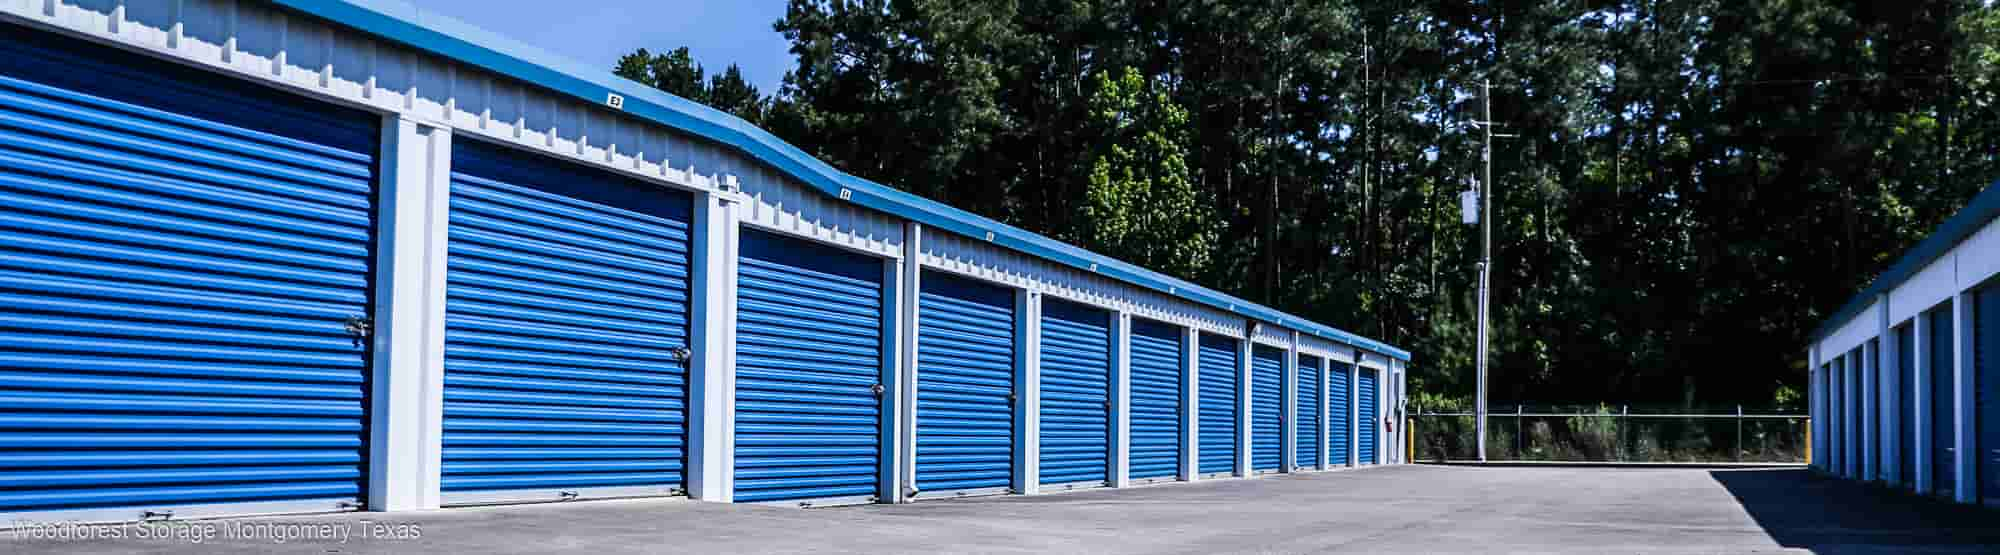 Woodforest Storage, Magnolia Texas 77354